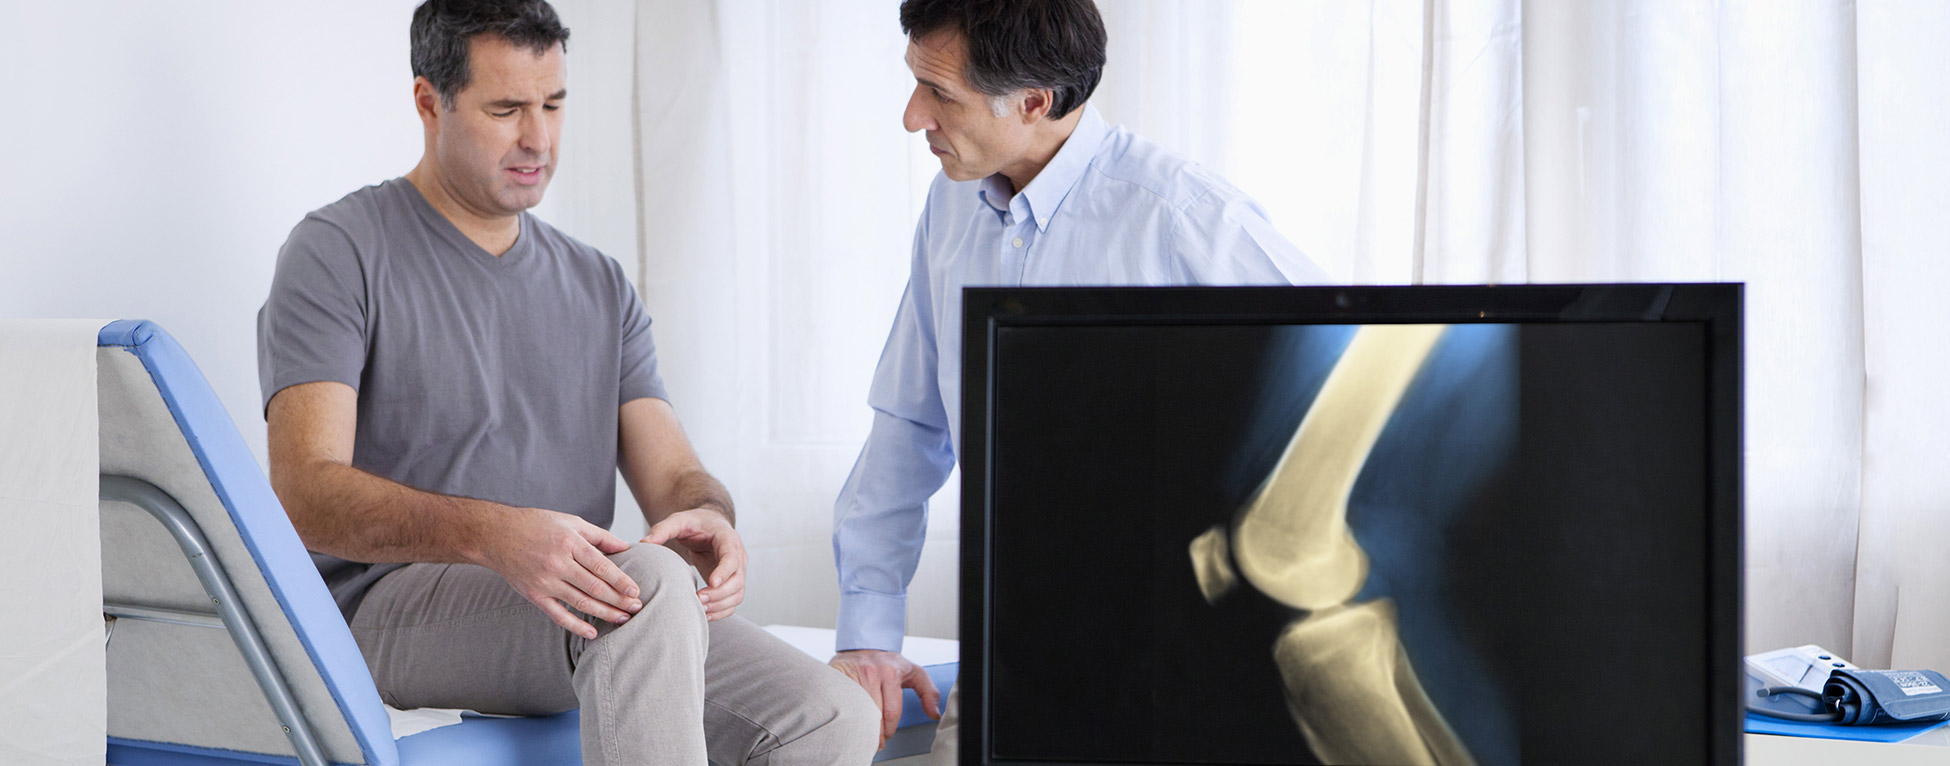 Orthopedics medical care at Precision Medical